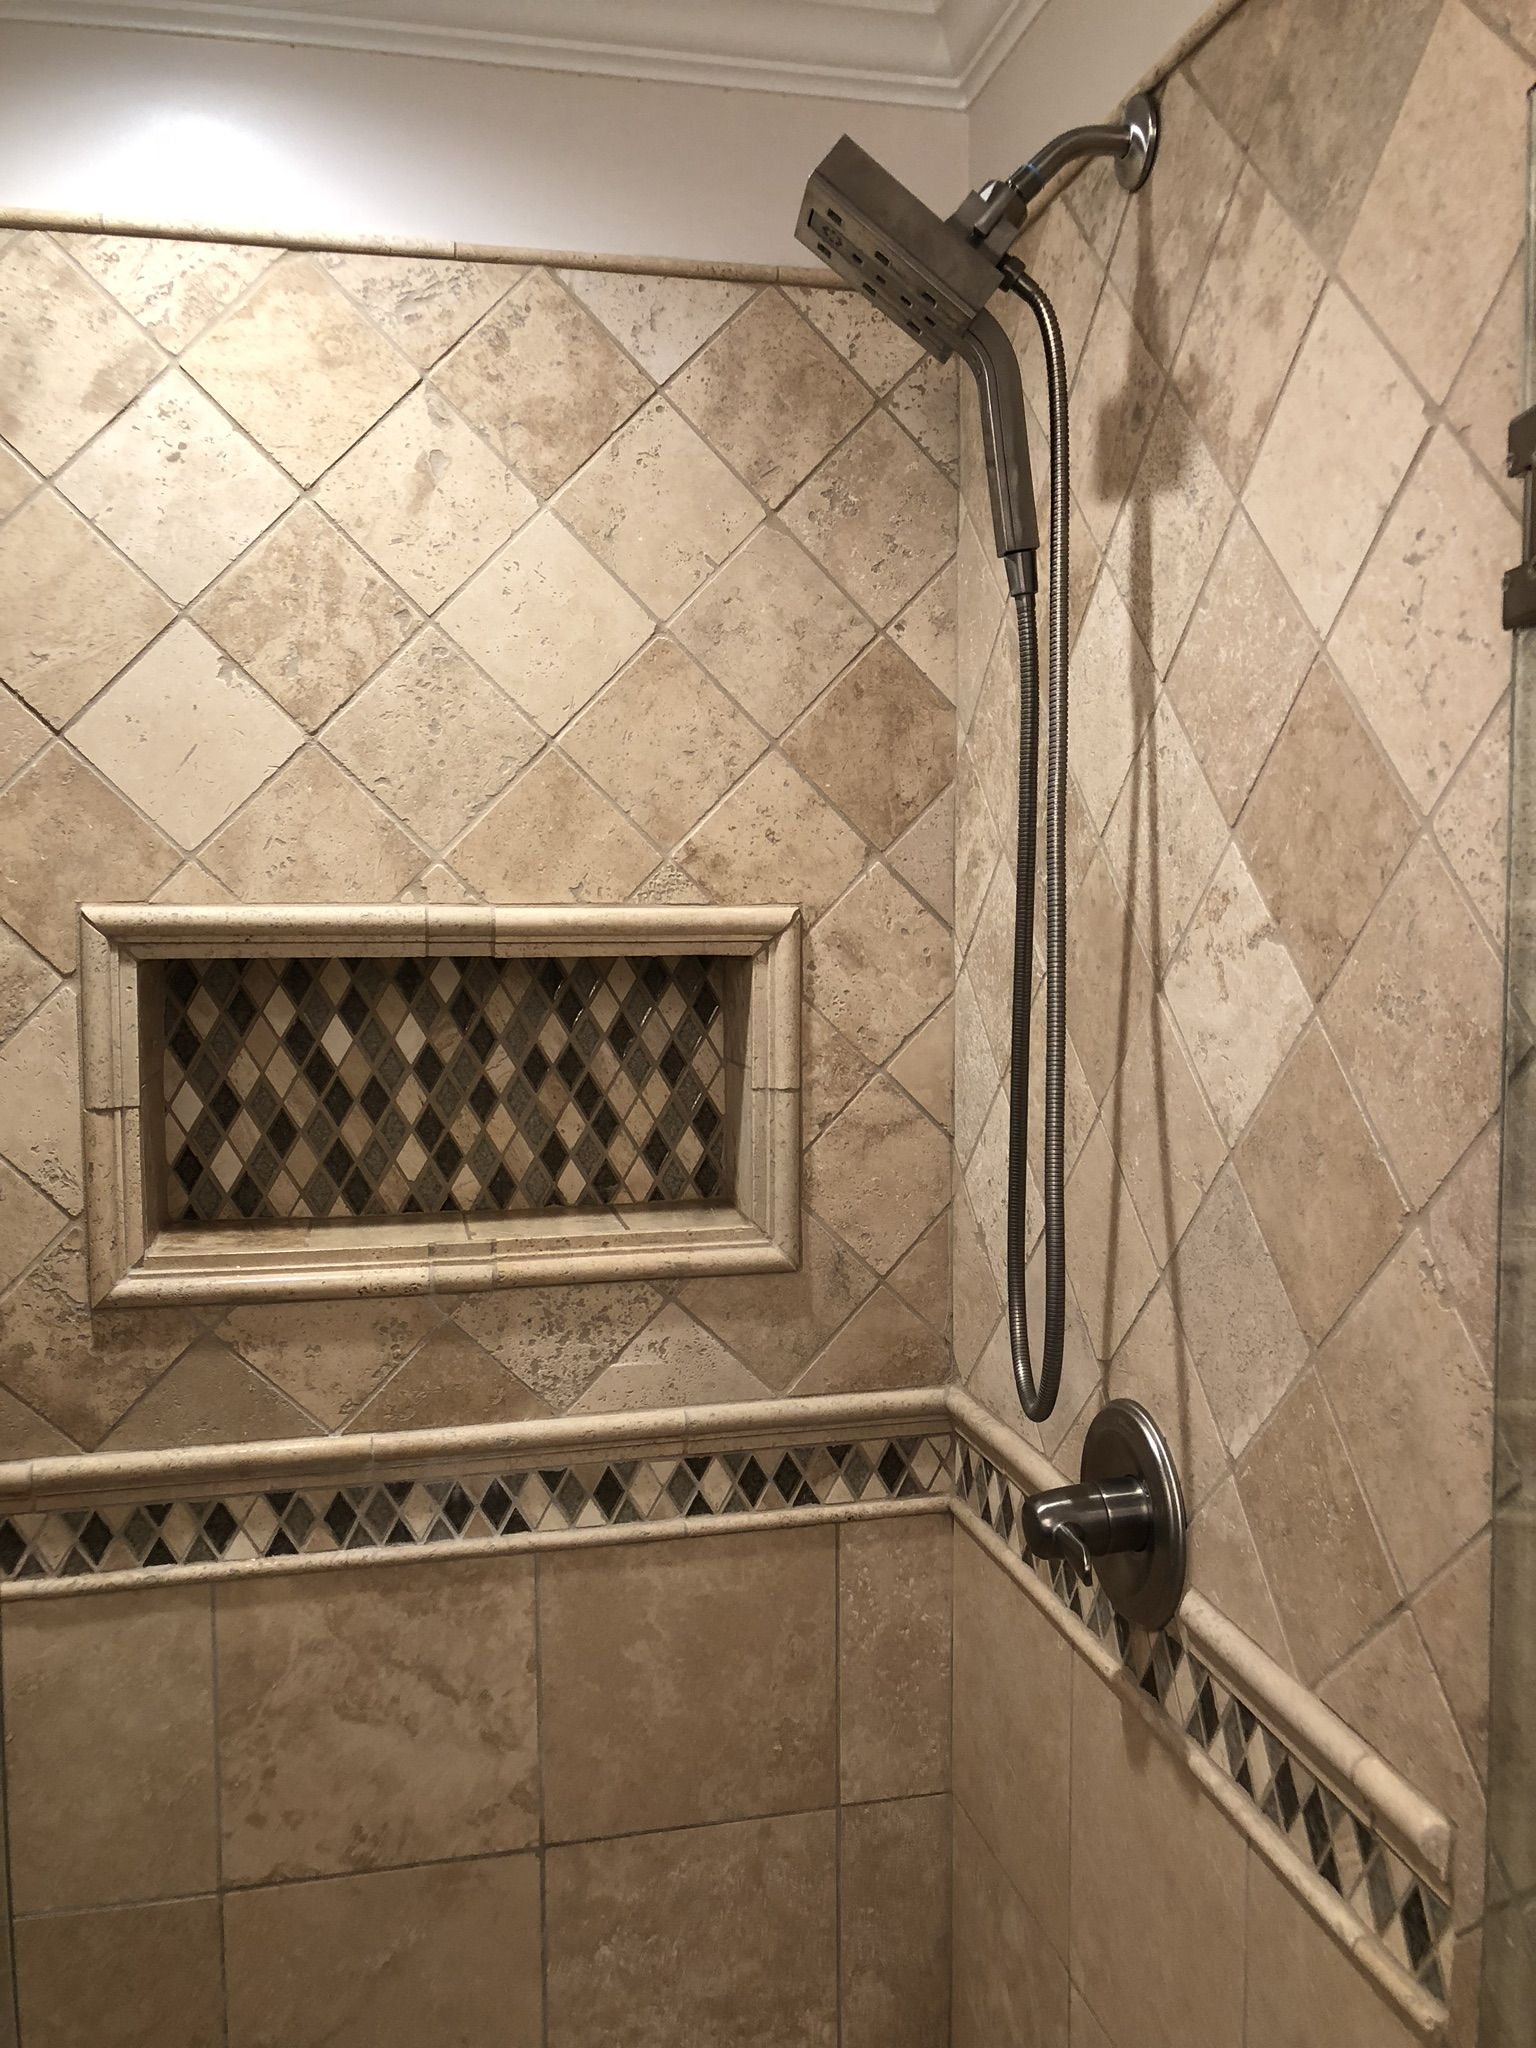 Tile shower with mosaic band and larger niche Flooring